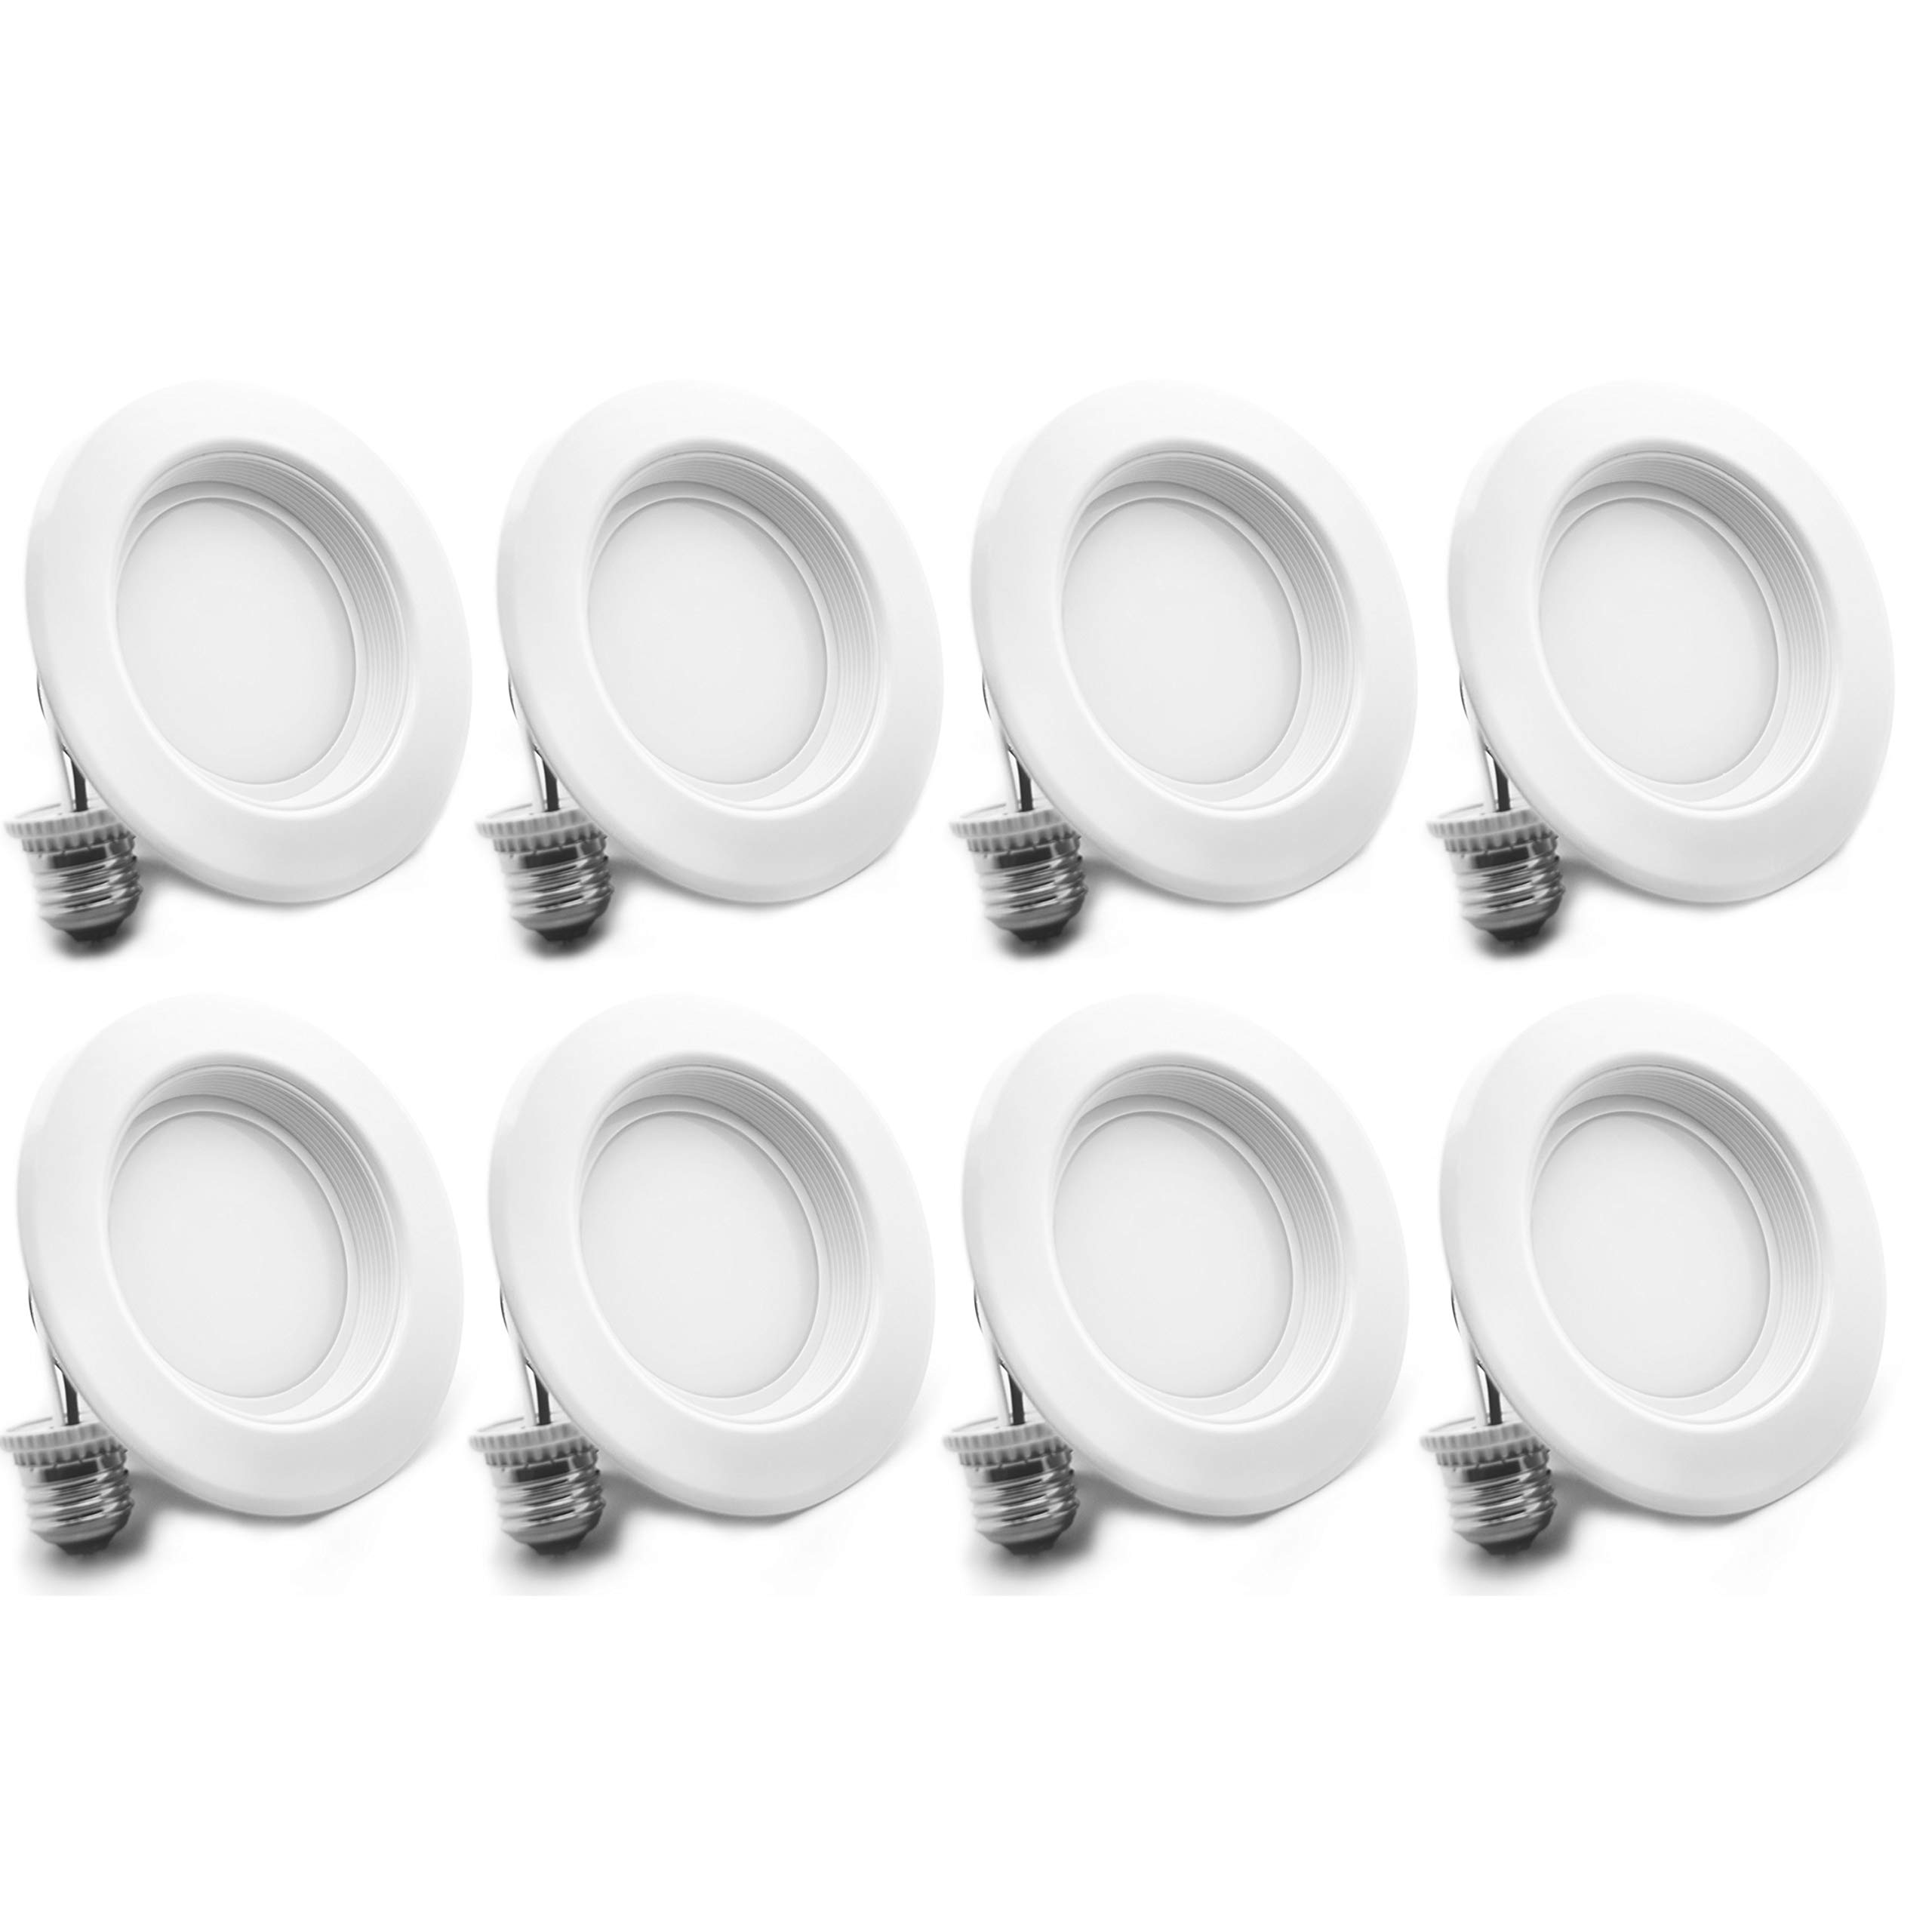 "Bioluz LED 4"" LED Retrofit Recessed Light 65W Equivalent (Using 10W) 700 Lumen, 90 CRI, Dimmable, UL-Listed CEC JA8 Title 24 Compliant (8-Pack, 3000K Soft White, Beveled Trim)"